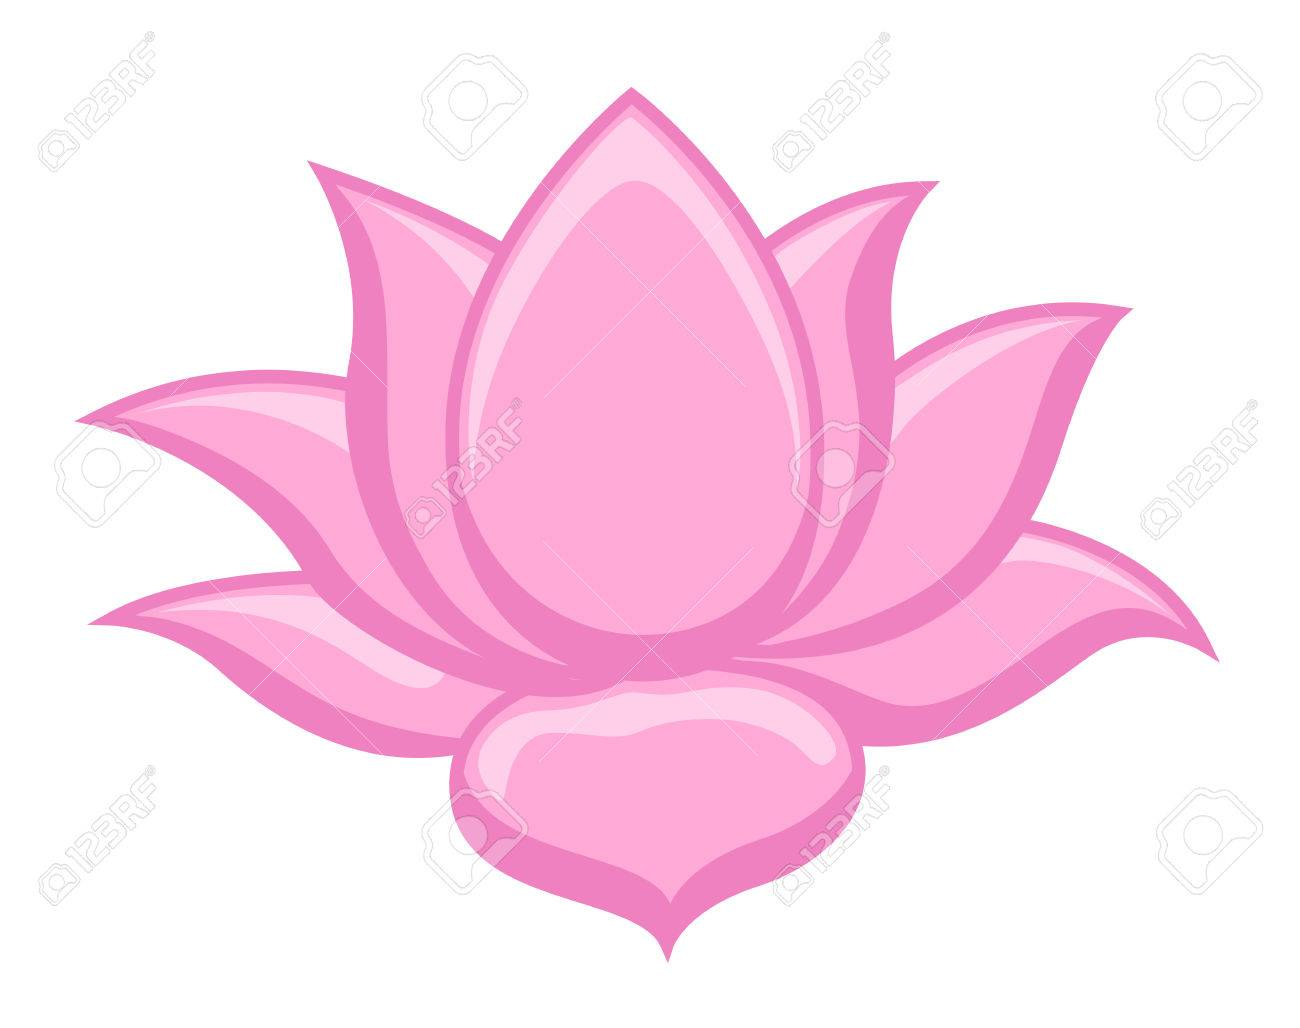 Lotus flower images clipart 4 » Clipart Station.